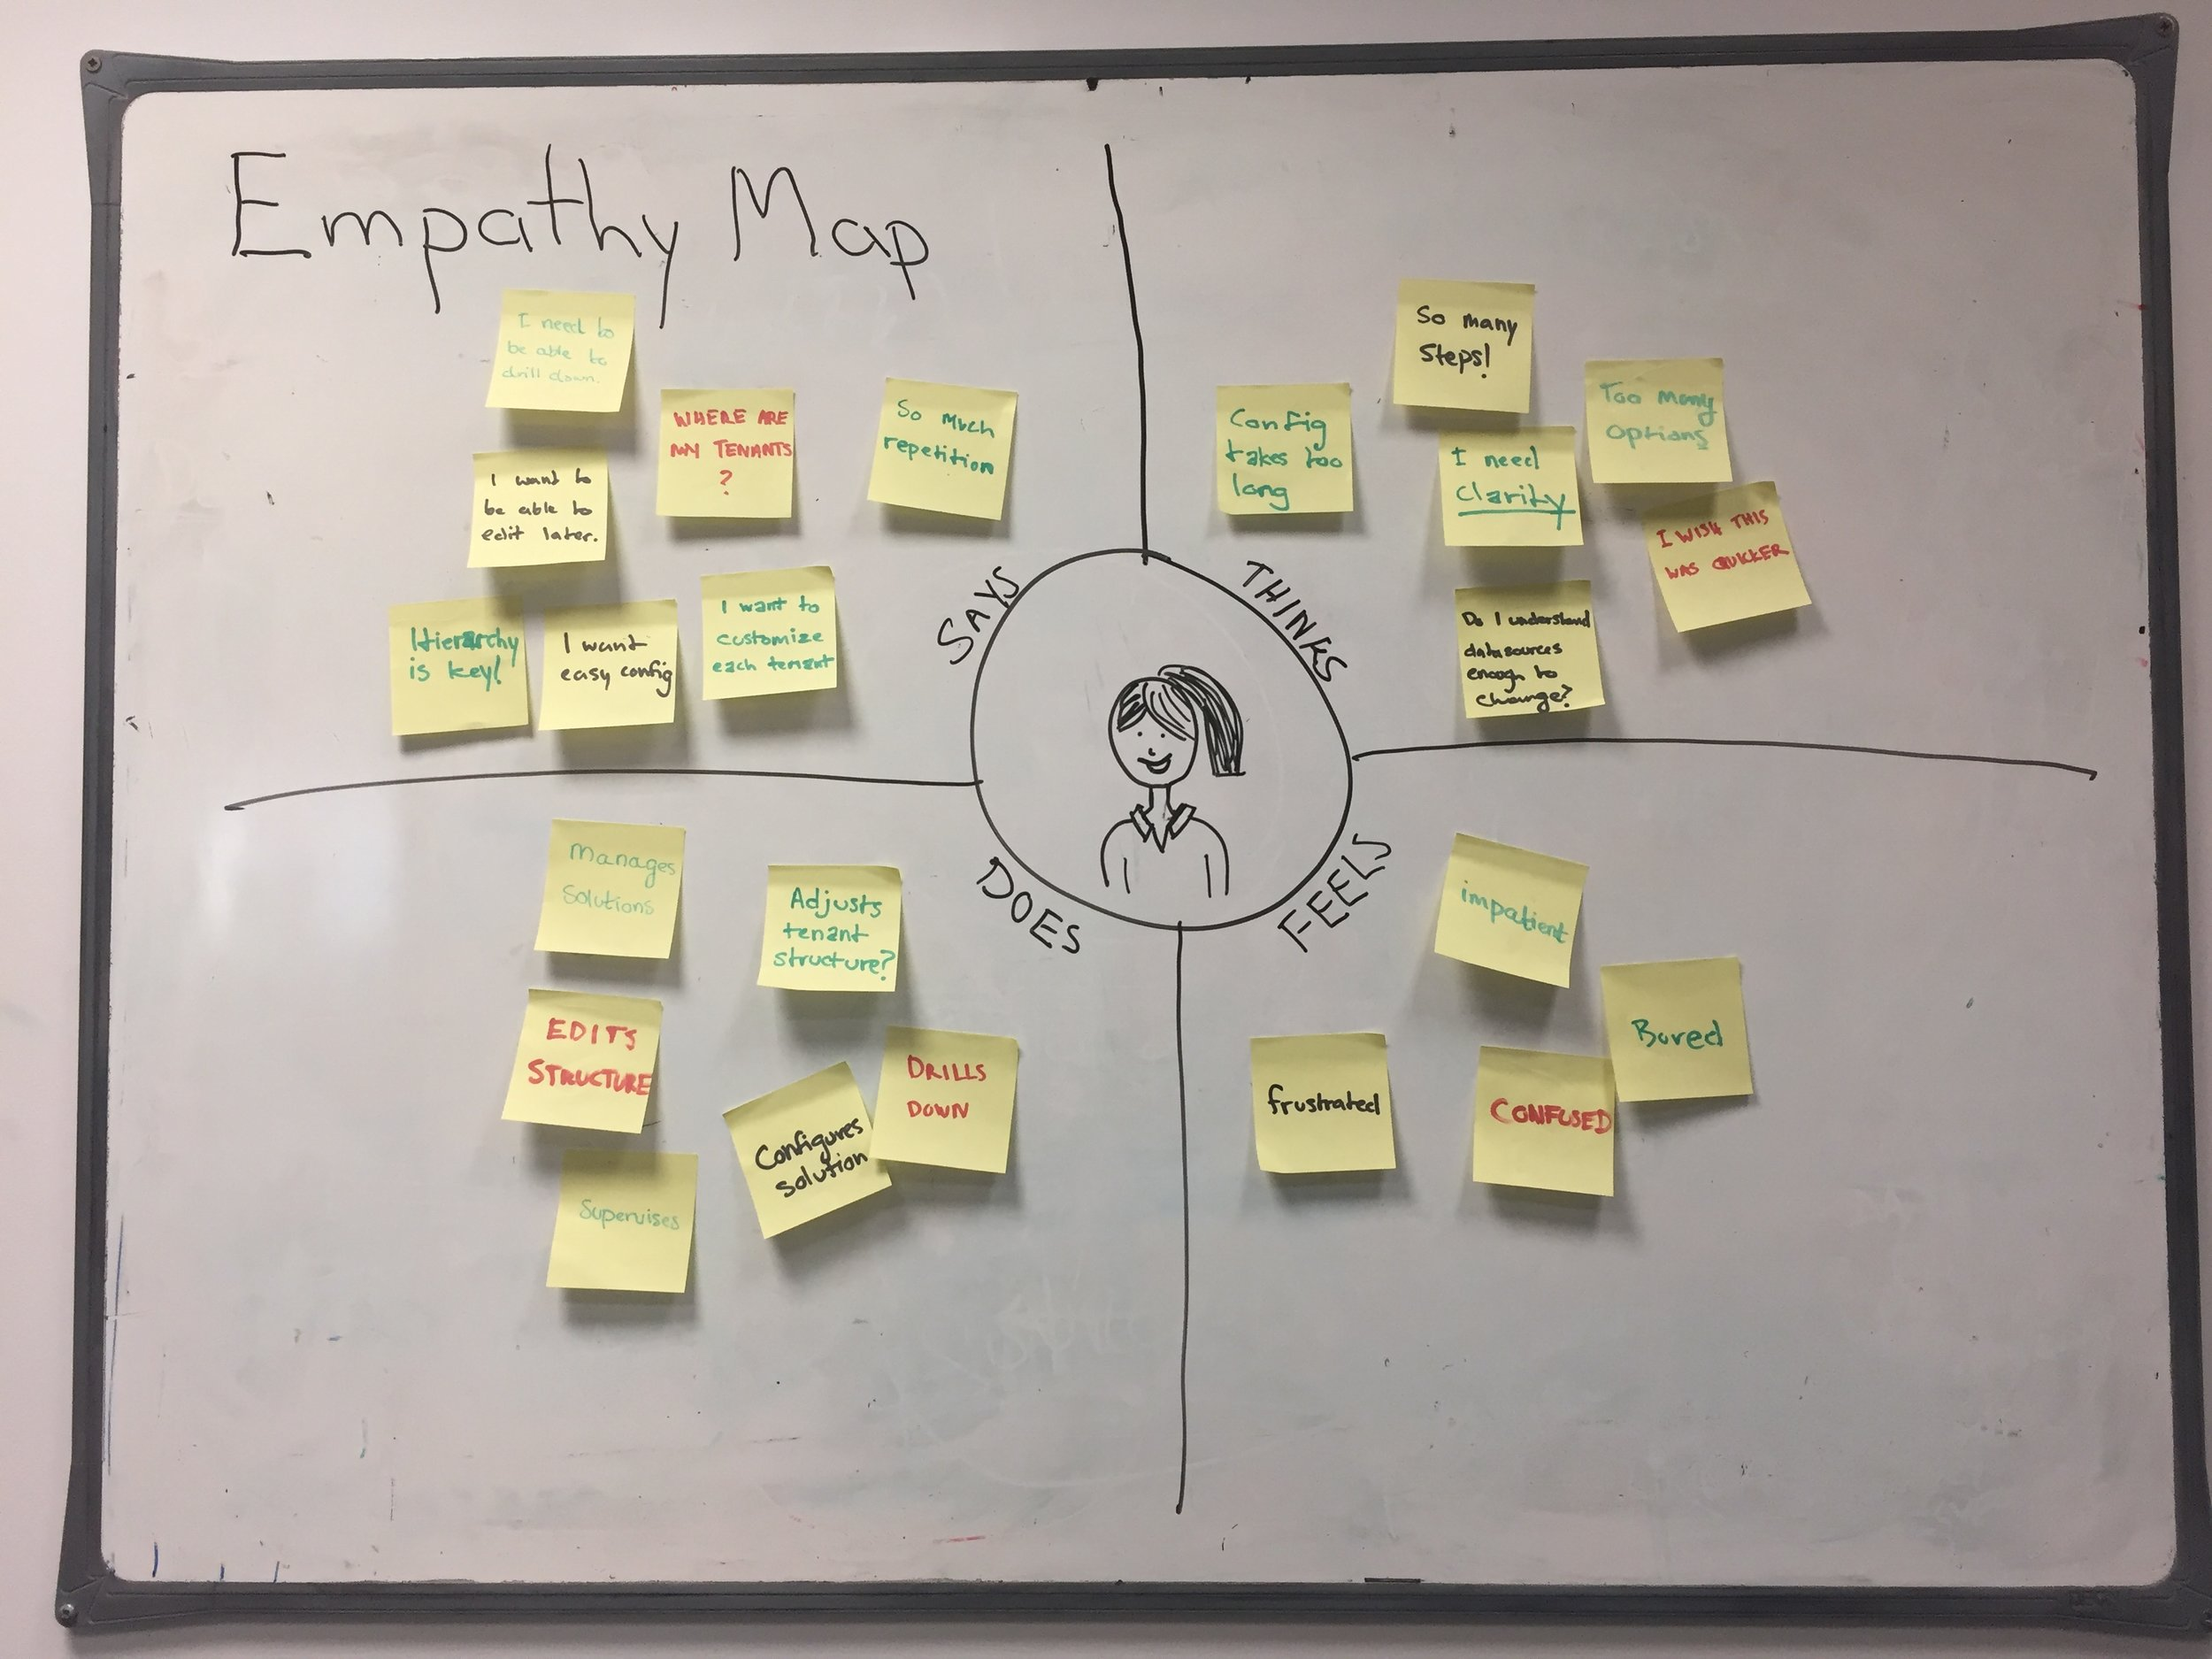 Empathy Map for Claire the Solution Administrator